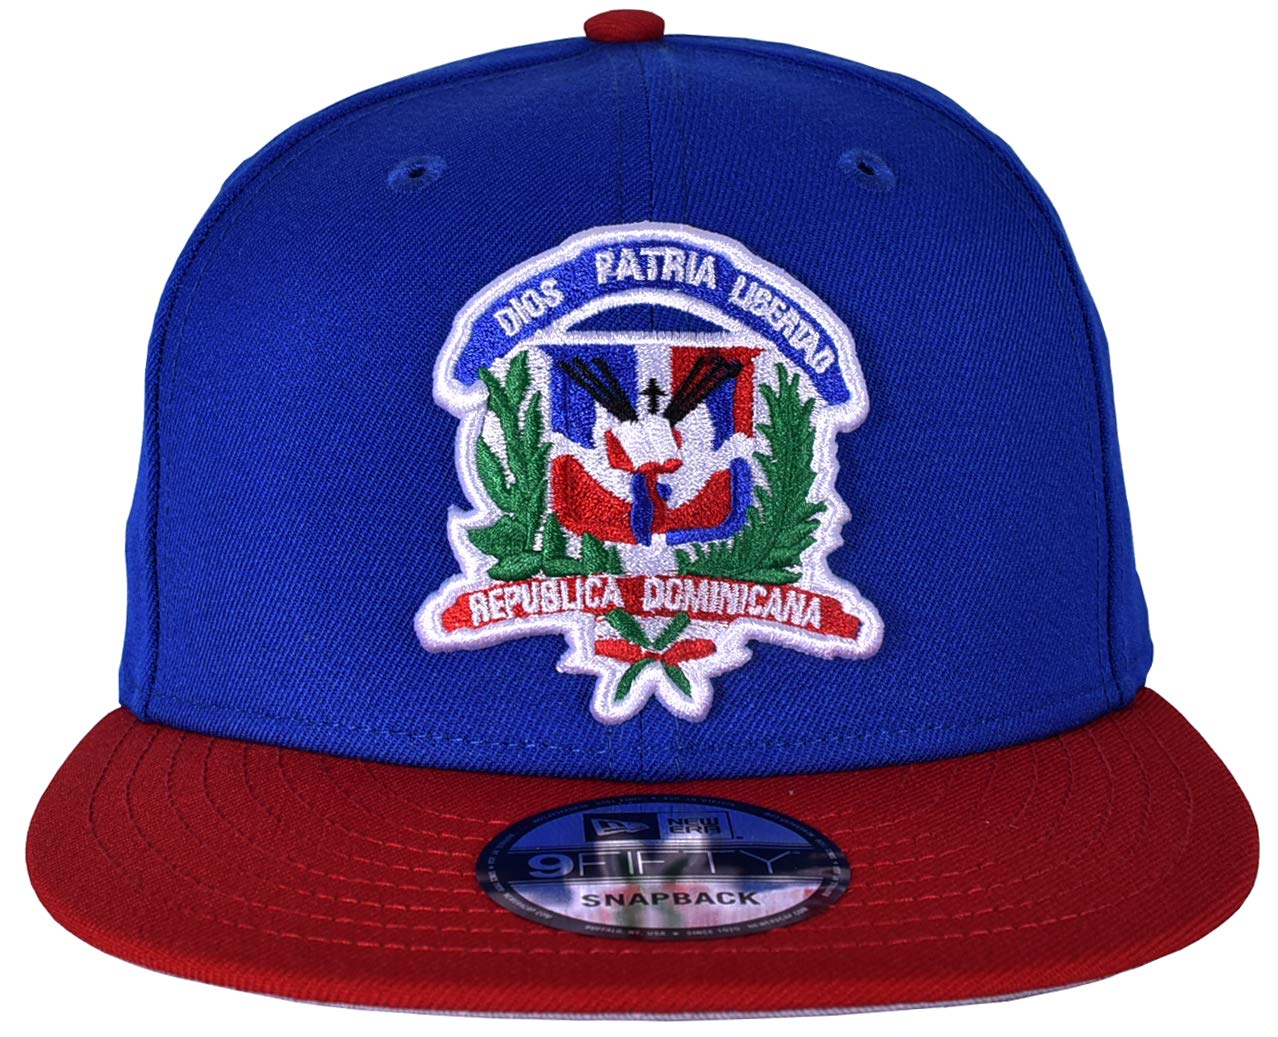 Amazon.com : New Era Republica Dominicana Mens Snapback in Black and Red : Sports & Outdoors